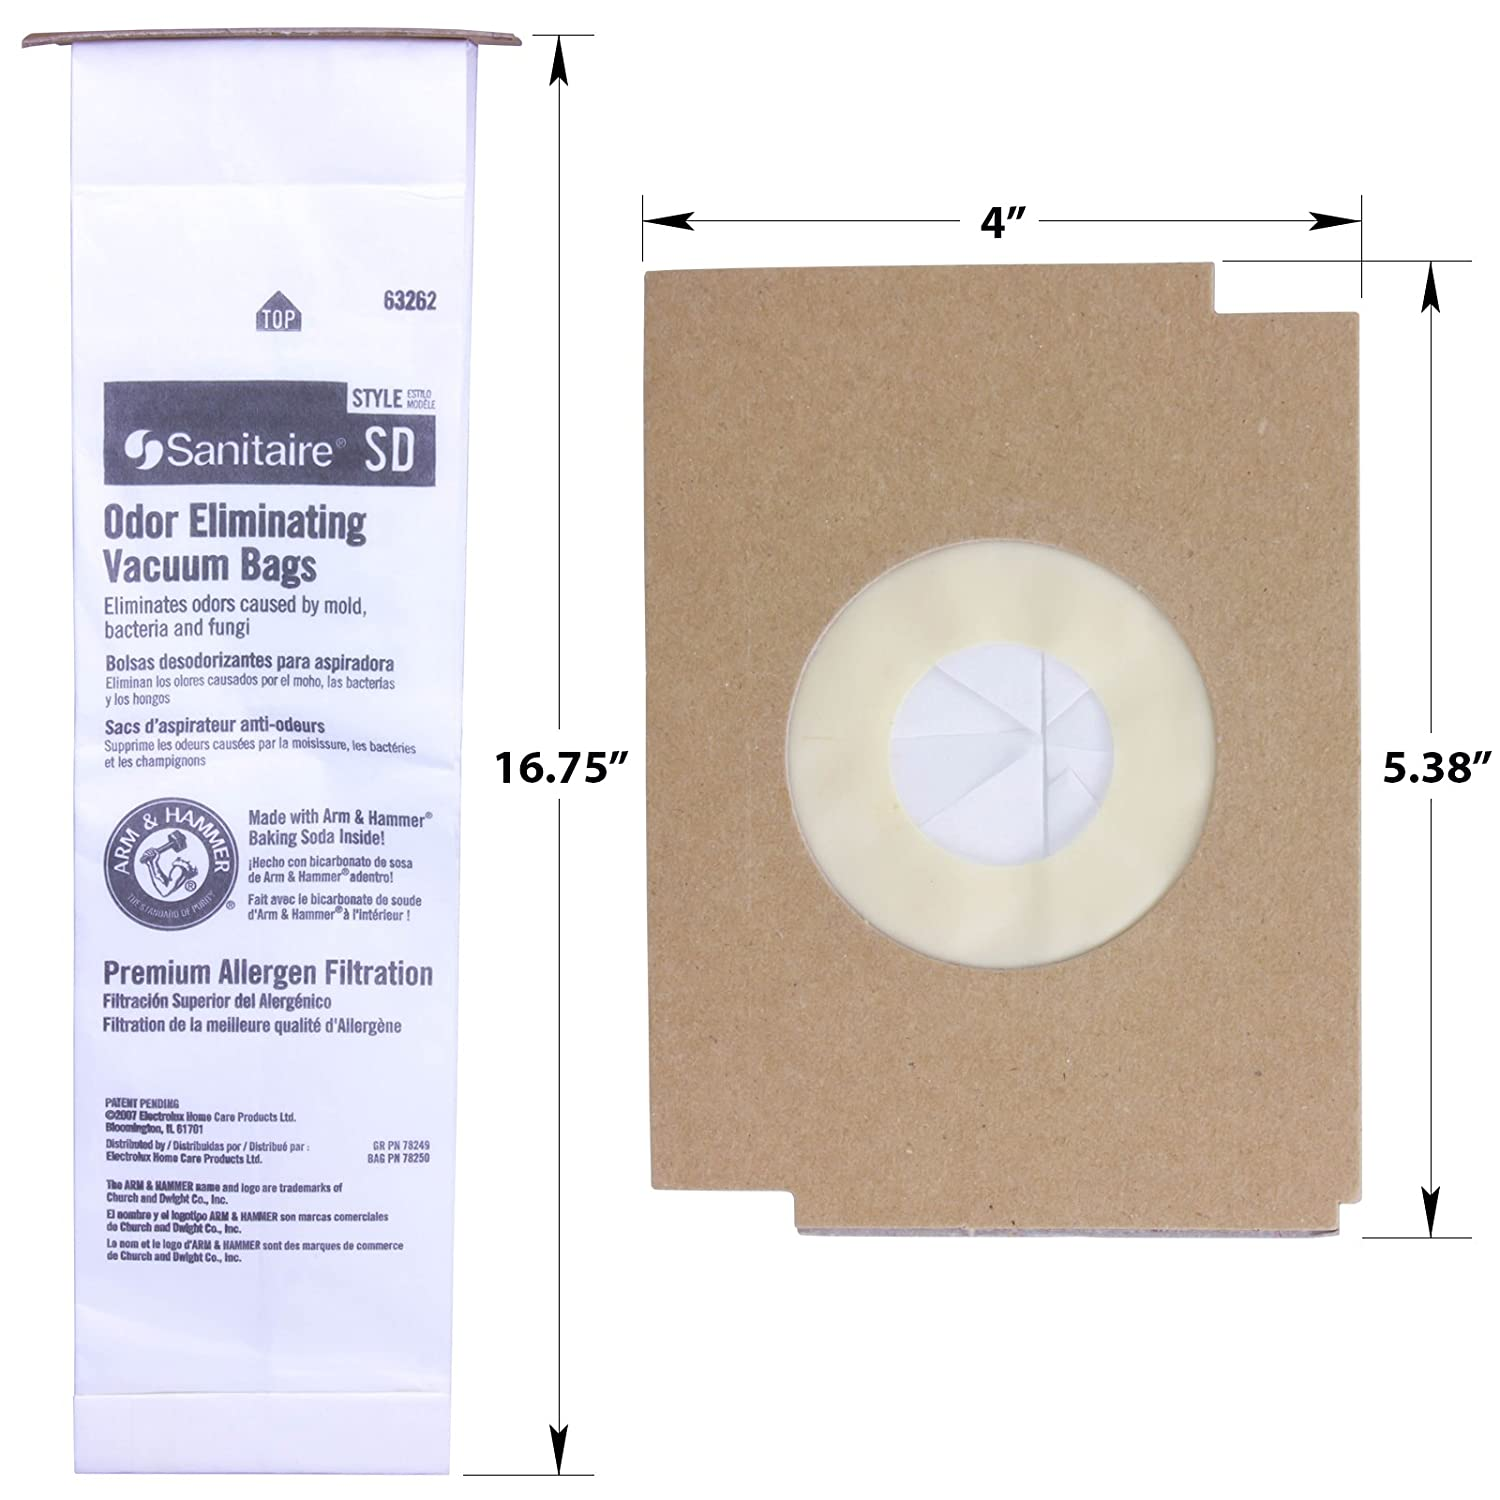 Sanitaire SD Odor Eliminating Vacuum Bags - 10 Bags. Professional Quality Filters with Arm & Hammer Baking Soda for Allergen and Odor Filtration. ...